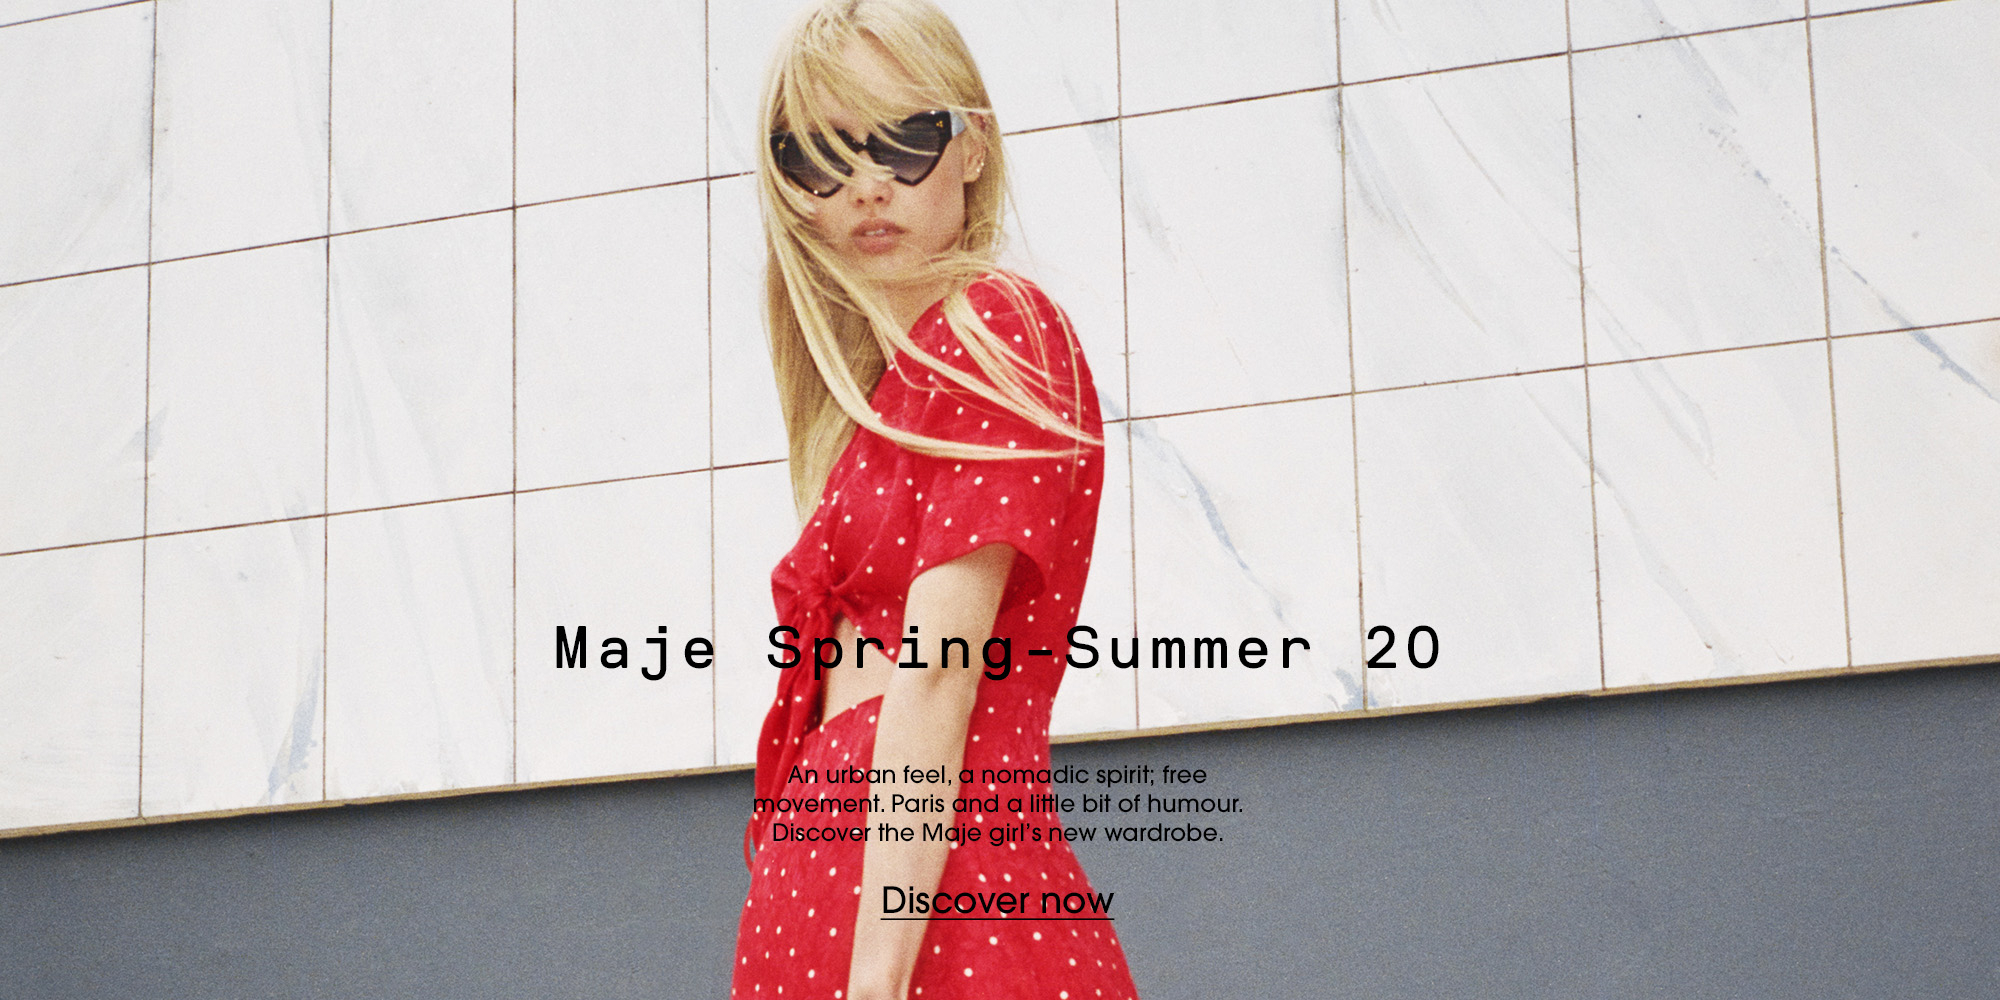 ss20-collection-part-2-07022020.jpg